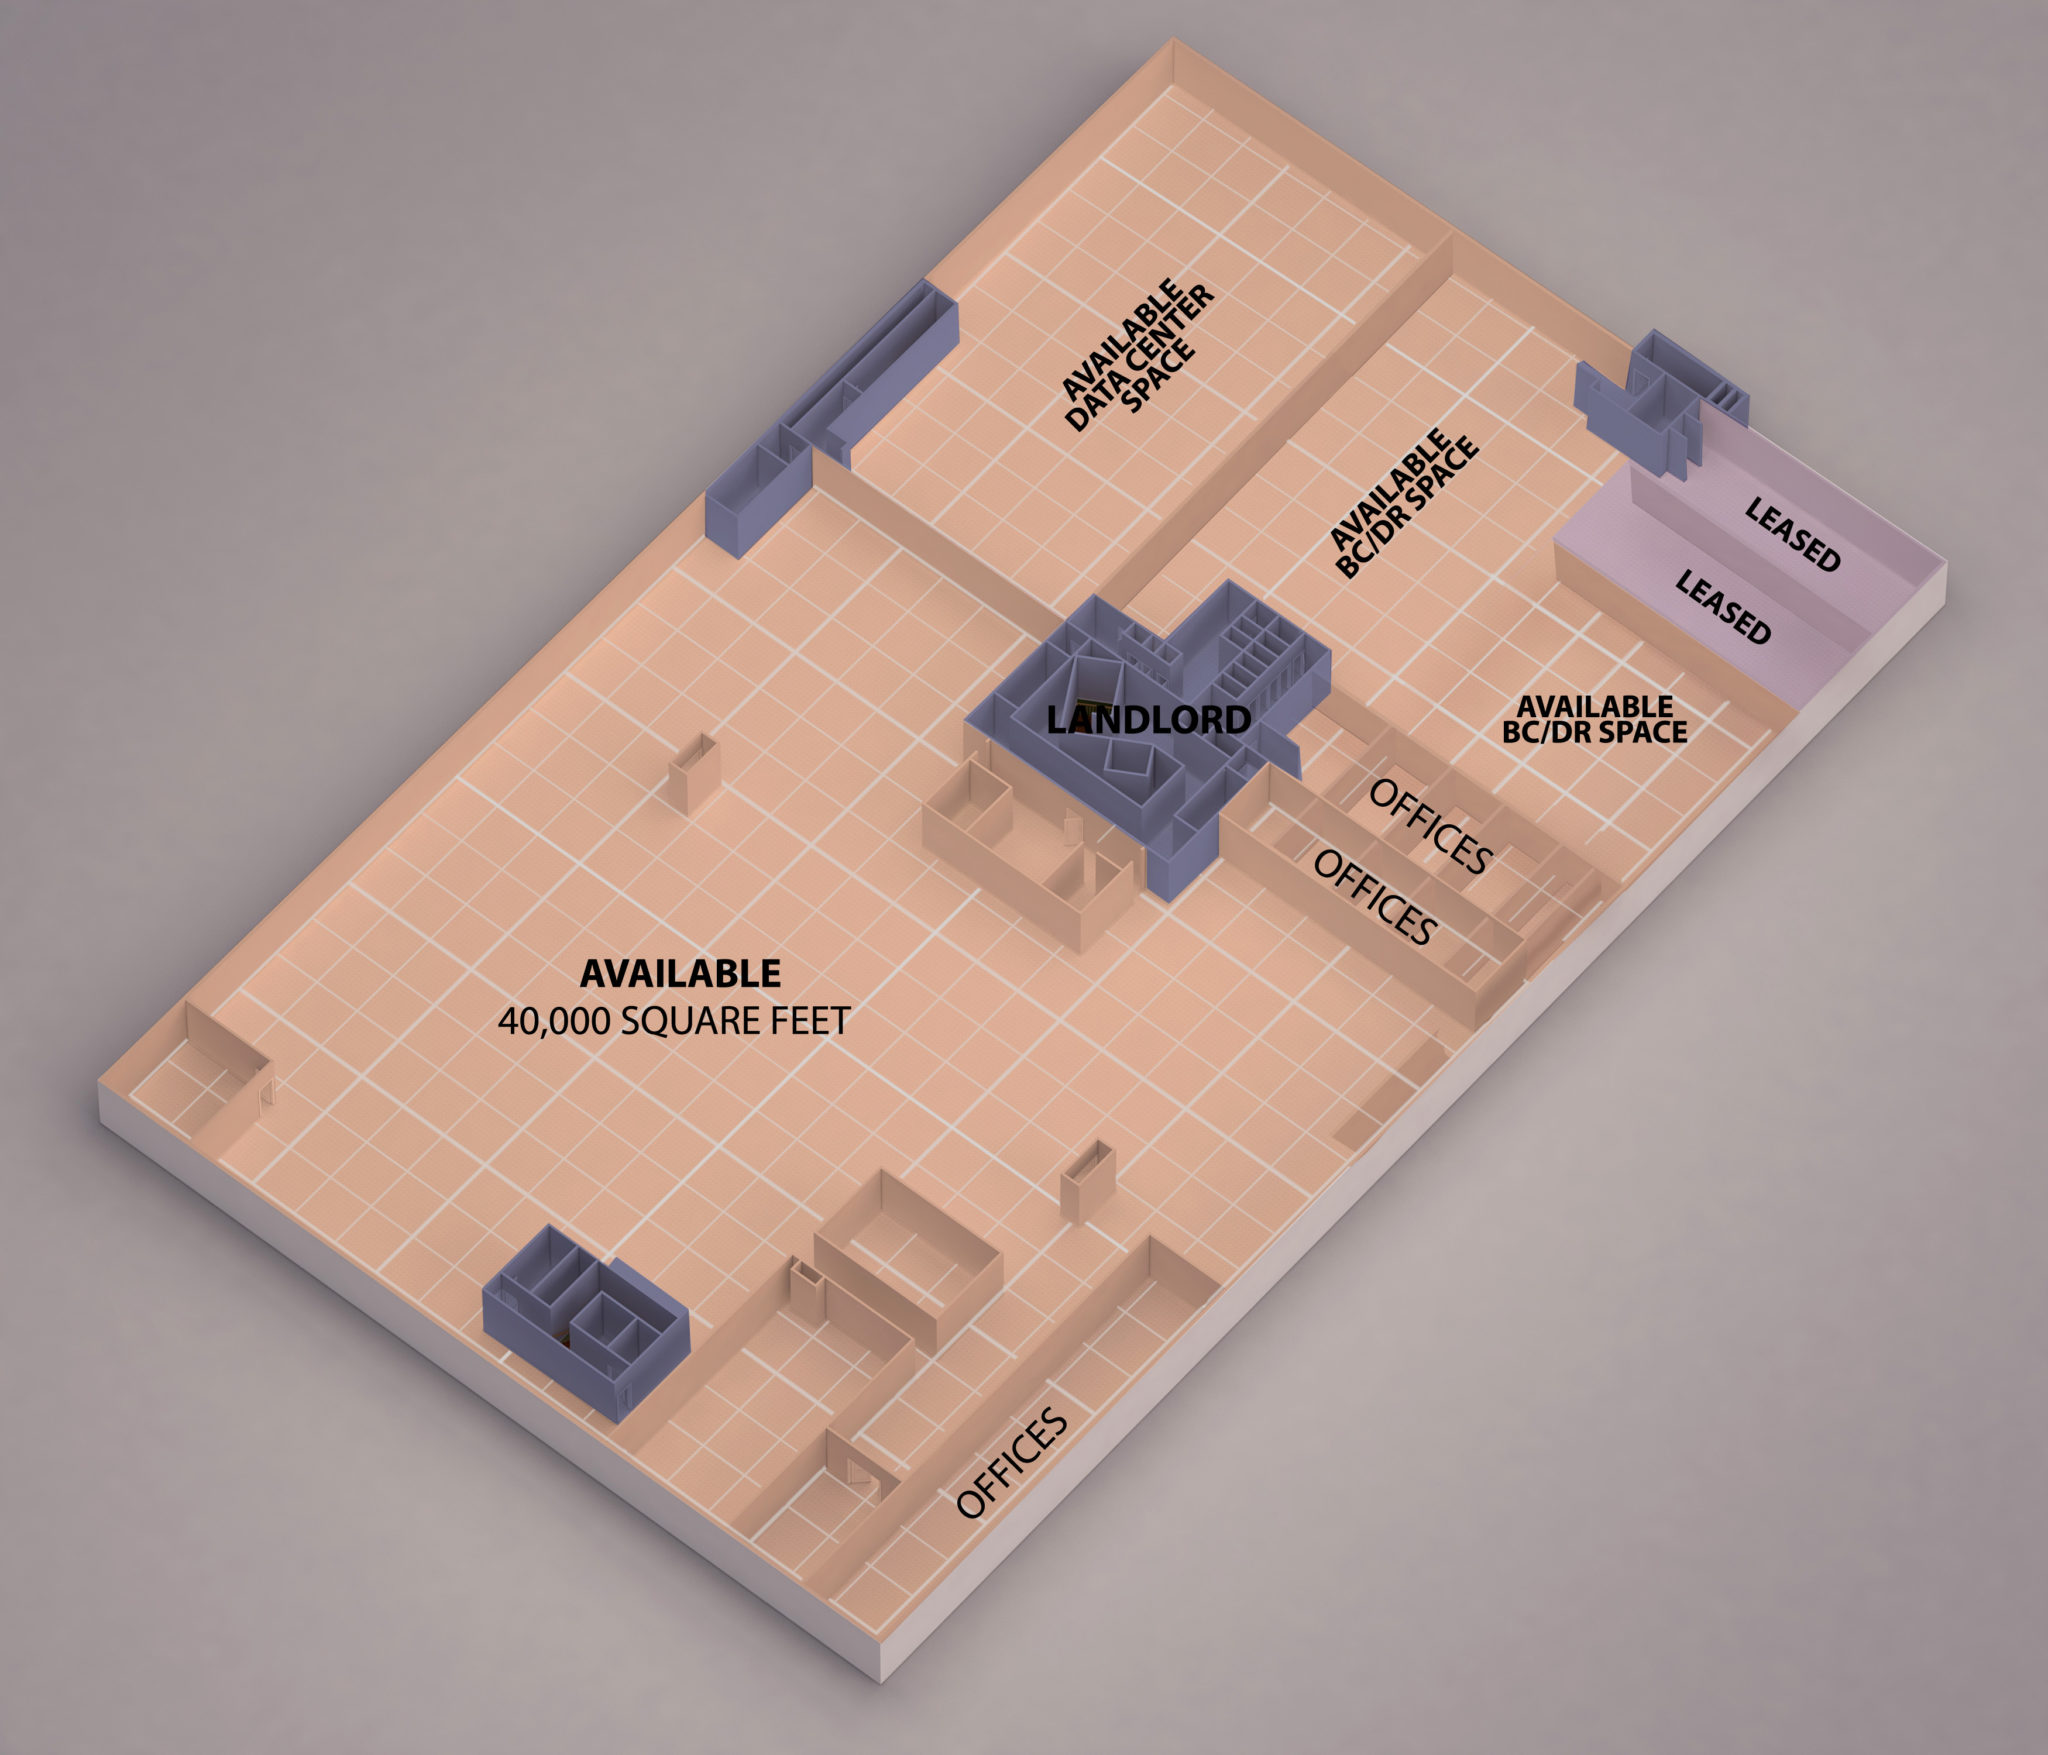 2nd floor floor plan of fifteenfortyseven's Orangeburg, New York Data Center